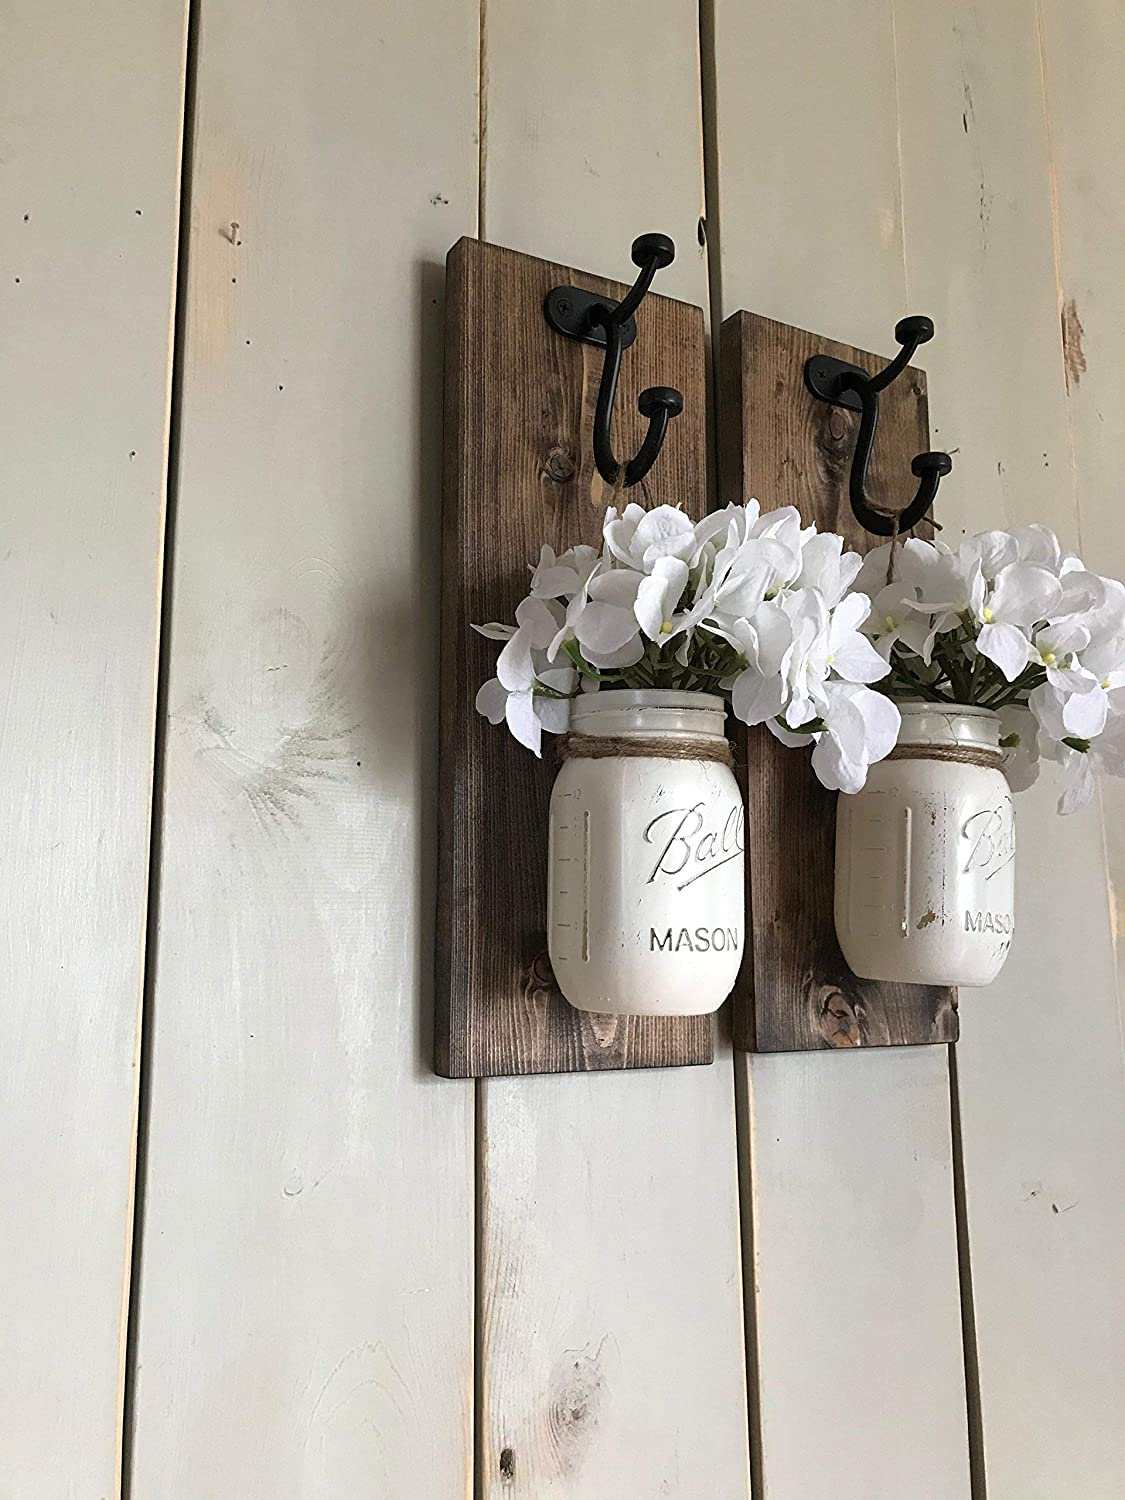 Rustic Wood Wall Sconce, Wood Wall Sconce with Flowers, Floral Wall Sconce Set, Mason Jar Wall Sconce